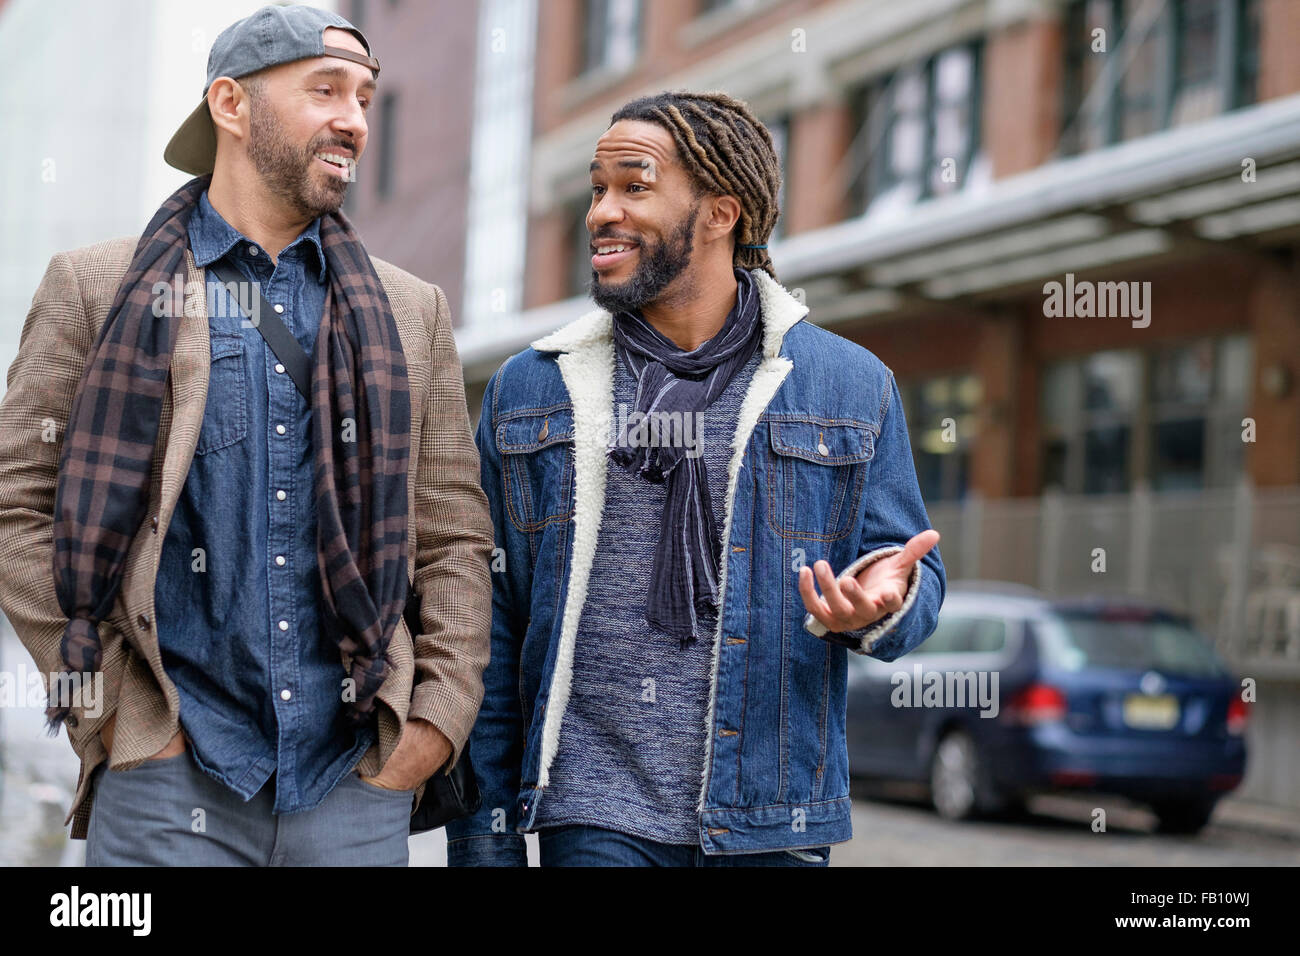 Smiley homosexual couple walking down street - Stock Image